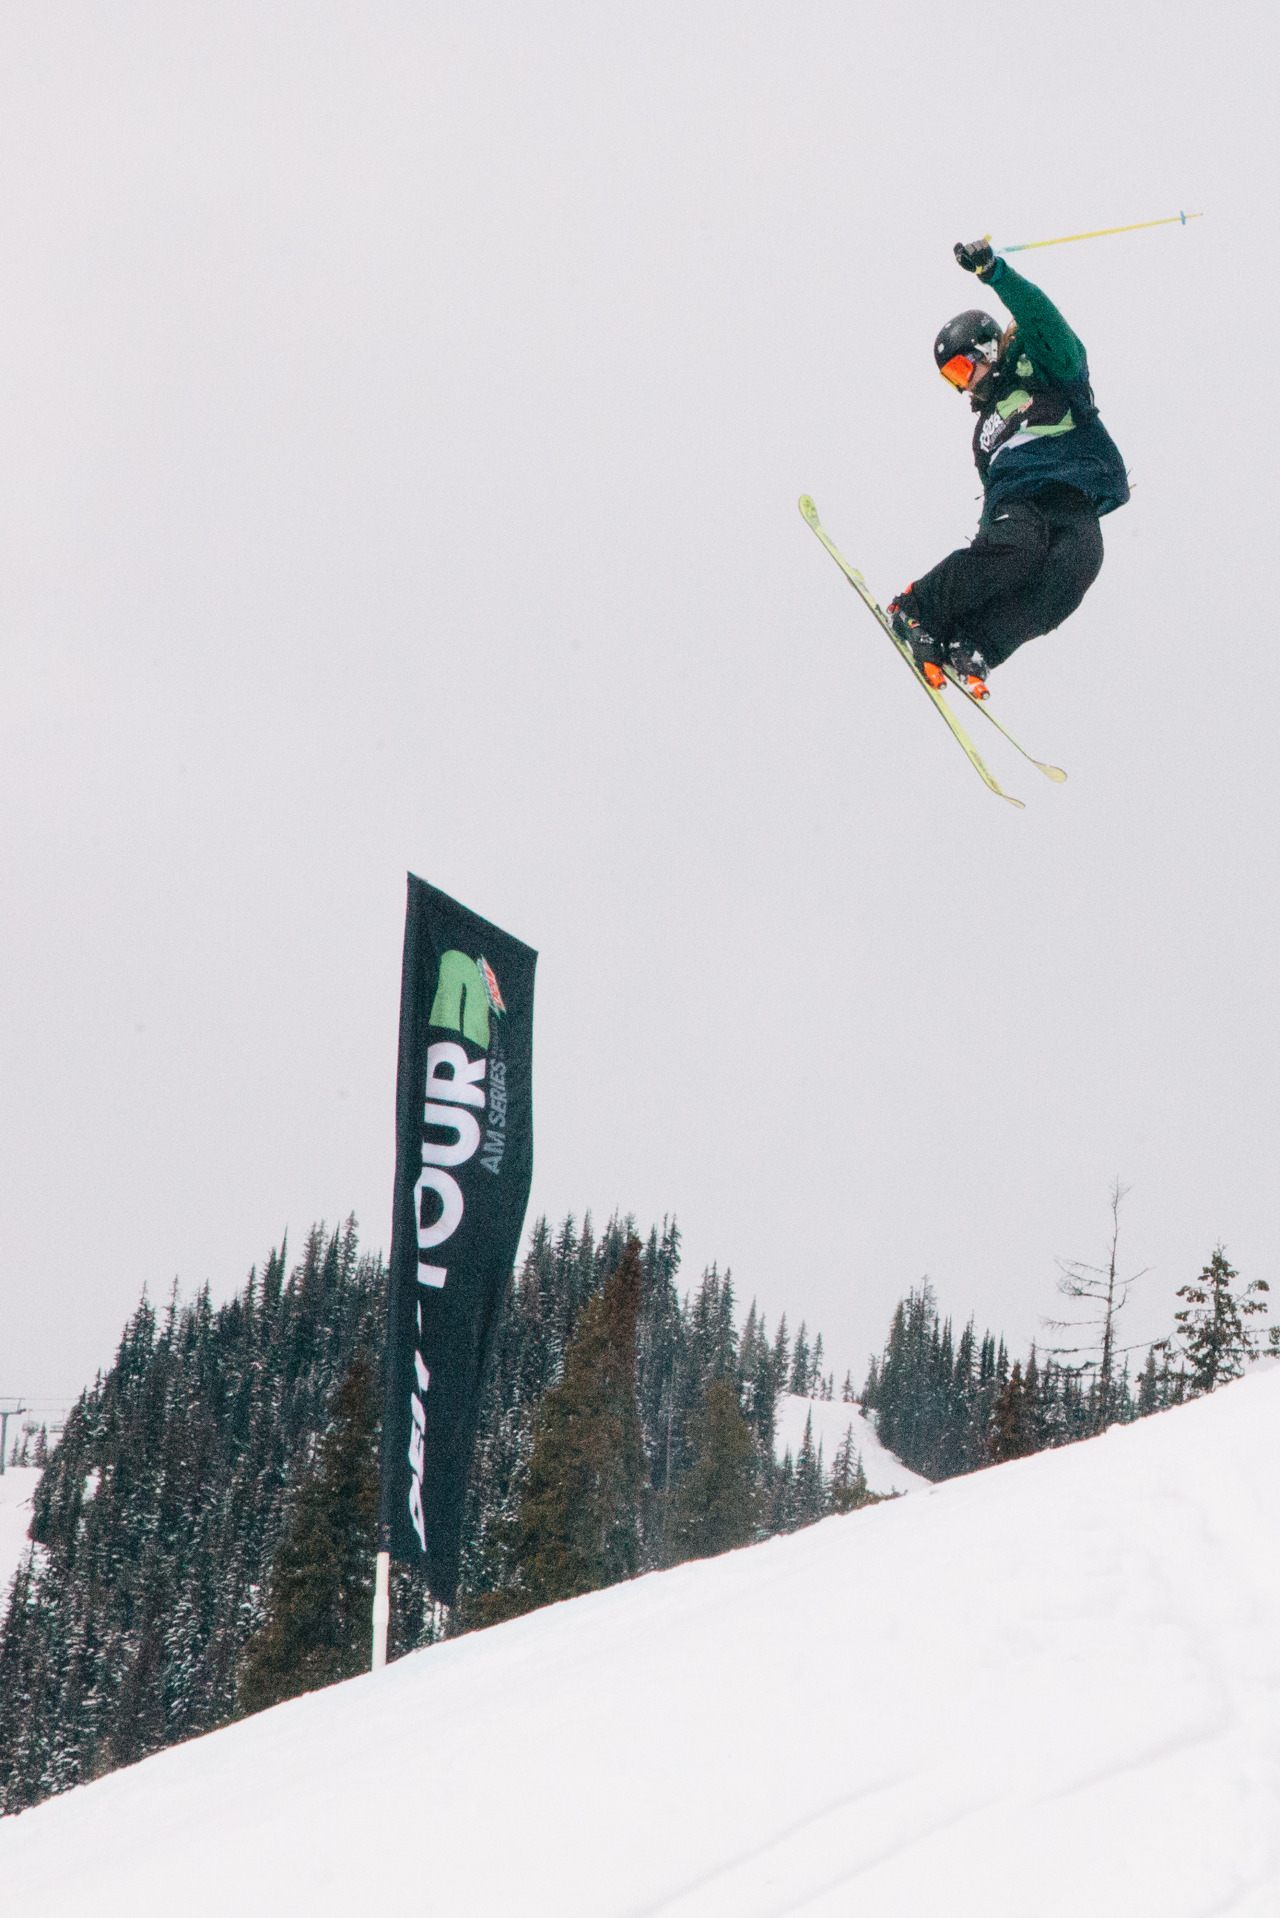 Last week I went to Sun Peaks for 24 hours to catch the  DEW Tour AM Series  ski and snowboard (slopestyle) competition.   It was pretty awesome, and kinda crazy what these amateur riders could do!  I JUST finished the post on it over on VIA… click here to check out more photos and a run down  of the events. Also, The Sheepdogs came in from the Junos in Winnipeg for a show so I got to shoot that as well.